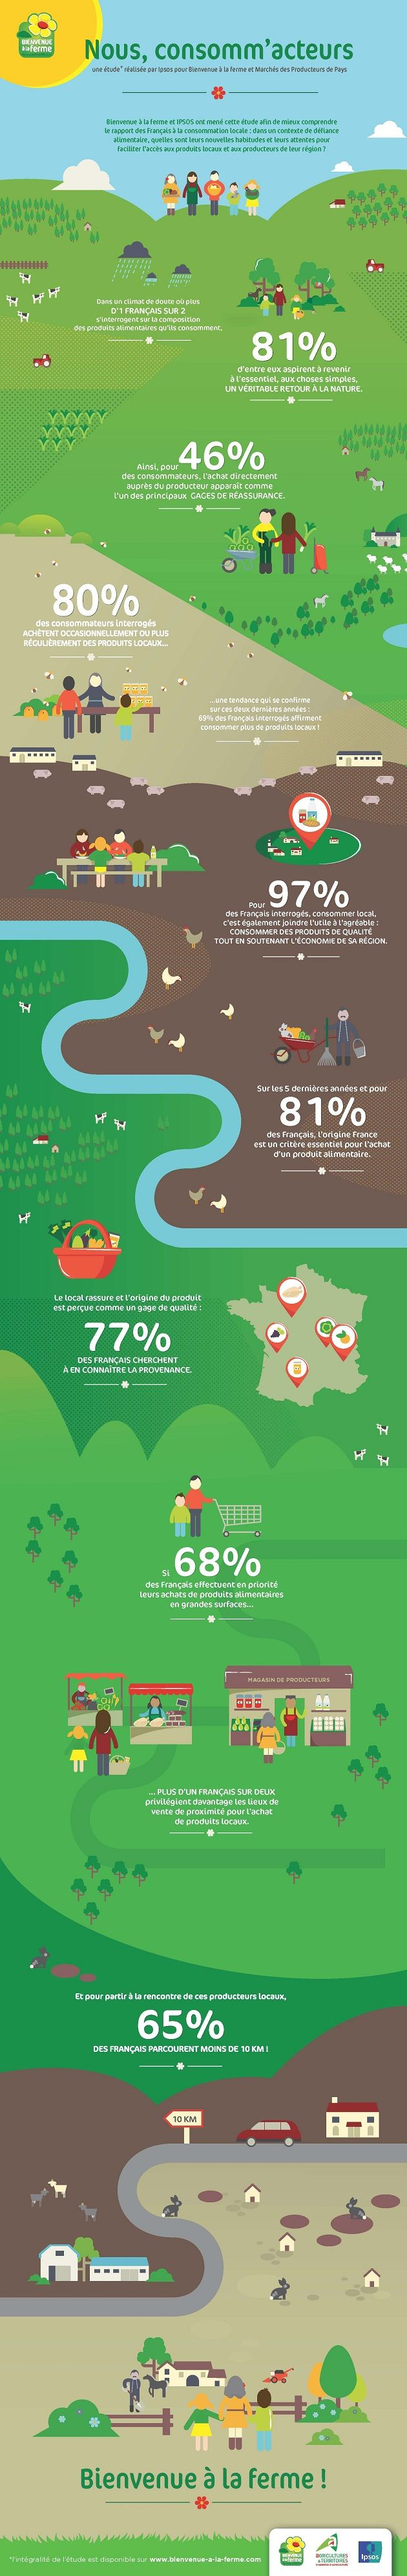 Infographie - consommation locale                                                                                                                                                                                 Plus